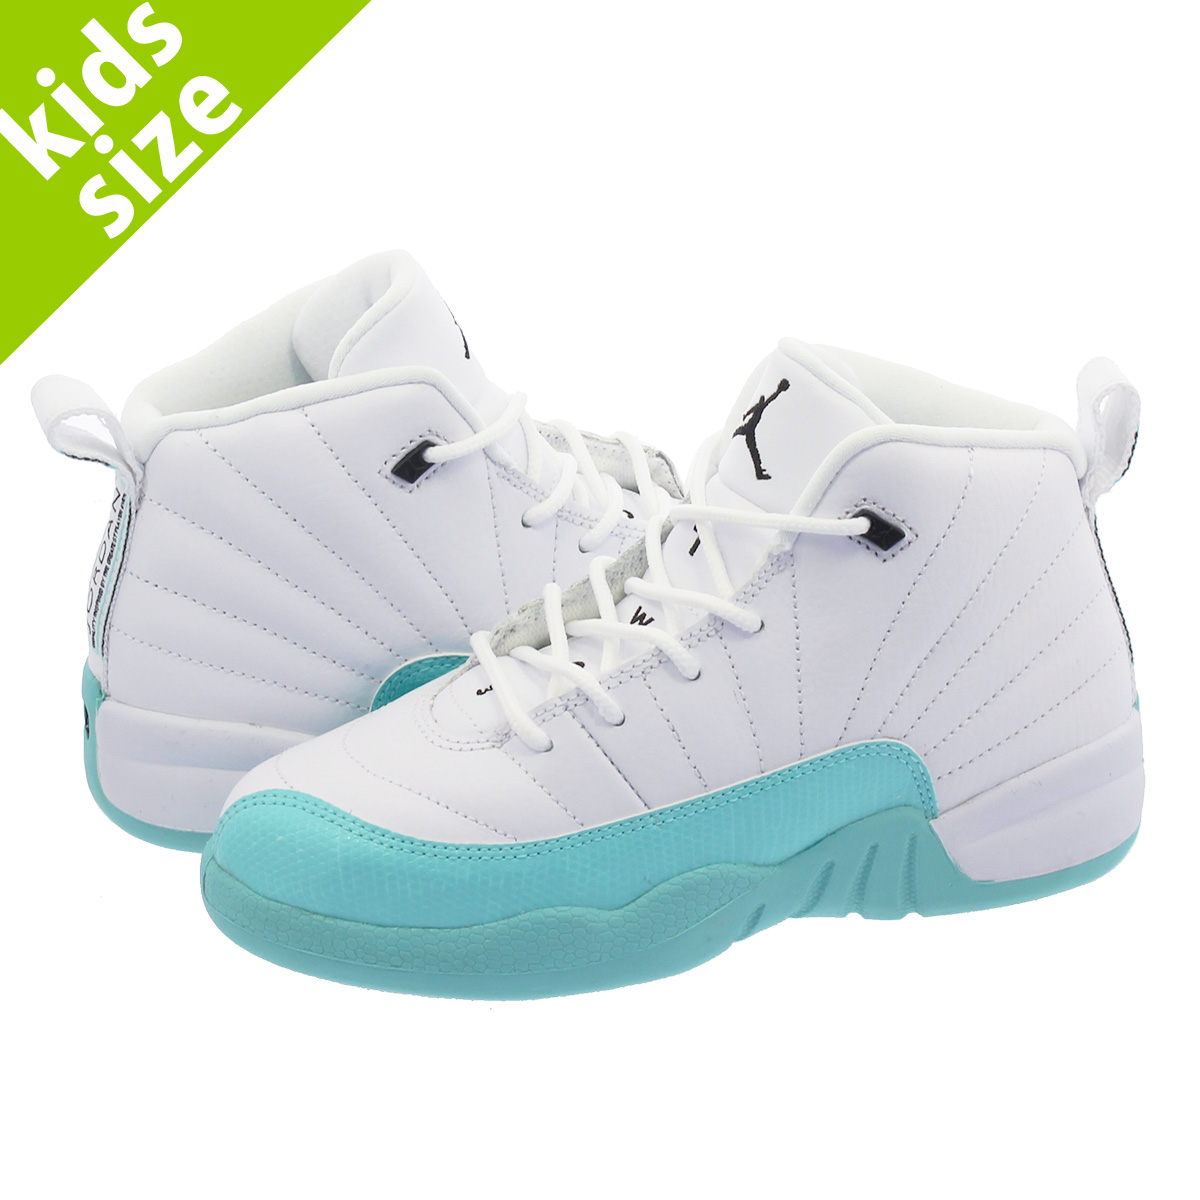 innovative design 6202b cb3de NIKE AIR JORDAN 12 RETRO PS Nike Air Jordan 12 nostalgic PS WHITE/LIGHT  AQUA/BLACK 510,816-100